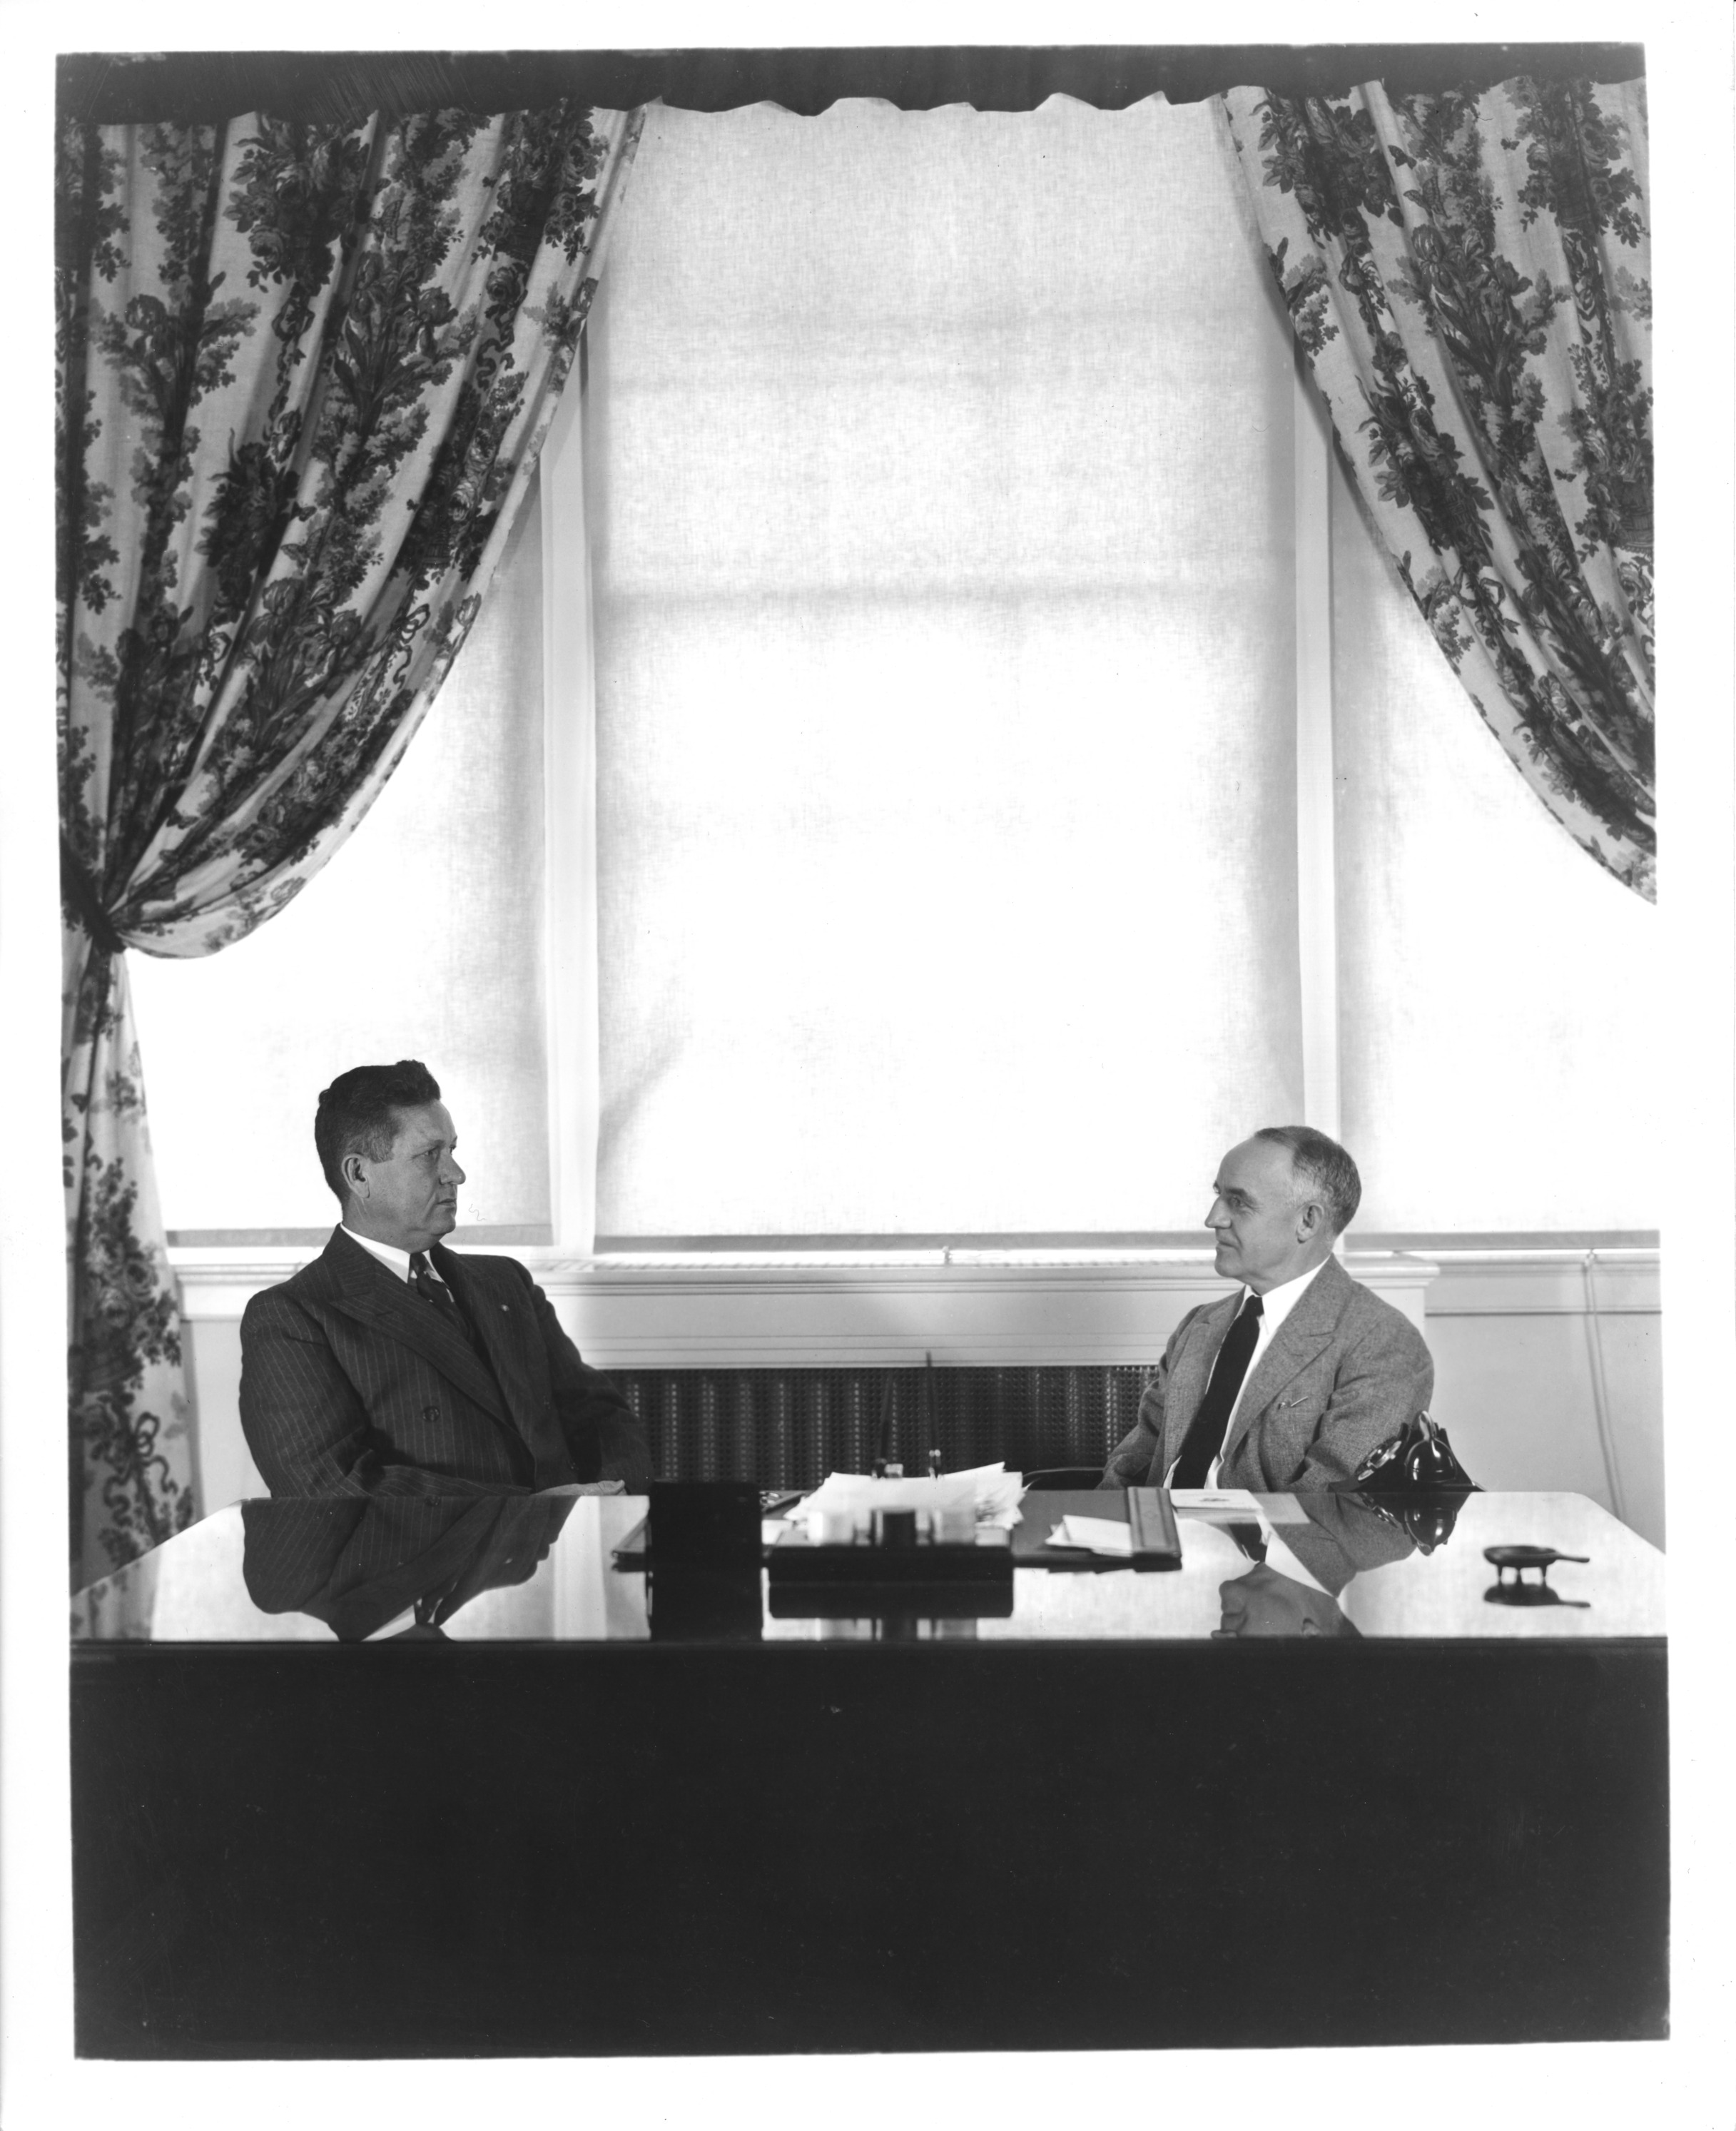 Dean of Administration at North Carolina State College, John William Harrelson, and President of the Consolidated University of North Carolina, Frank Porter Graham, seated left to right at desk.